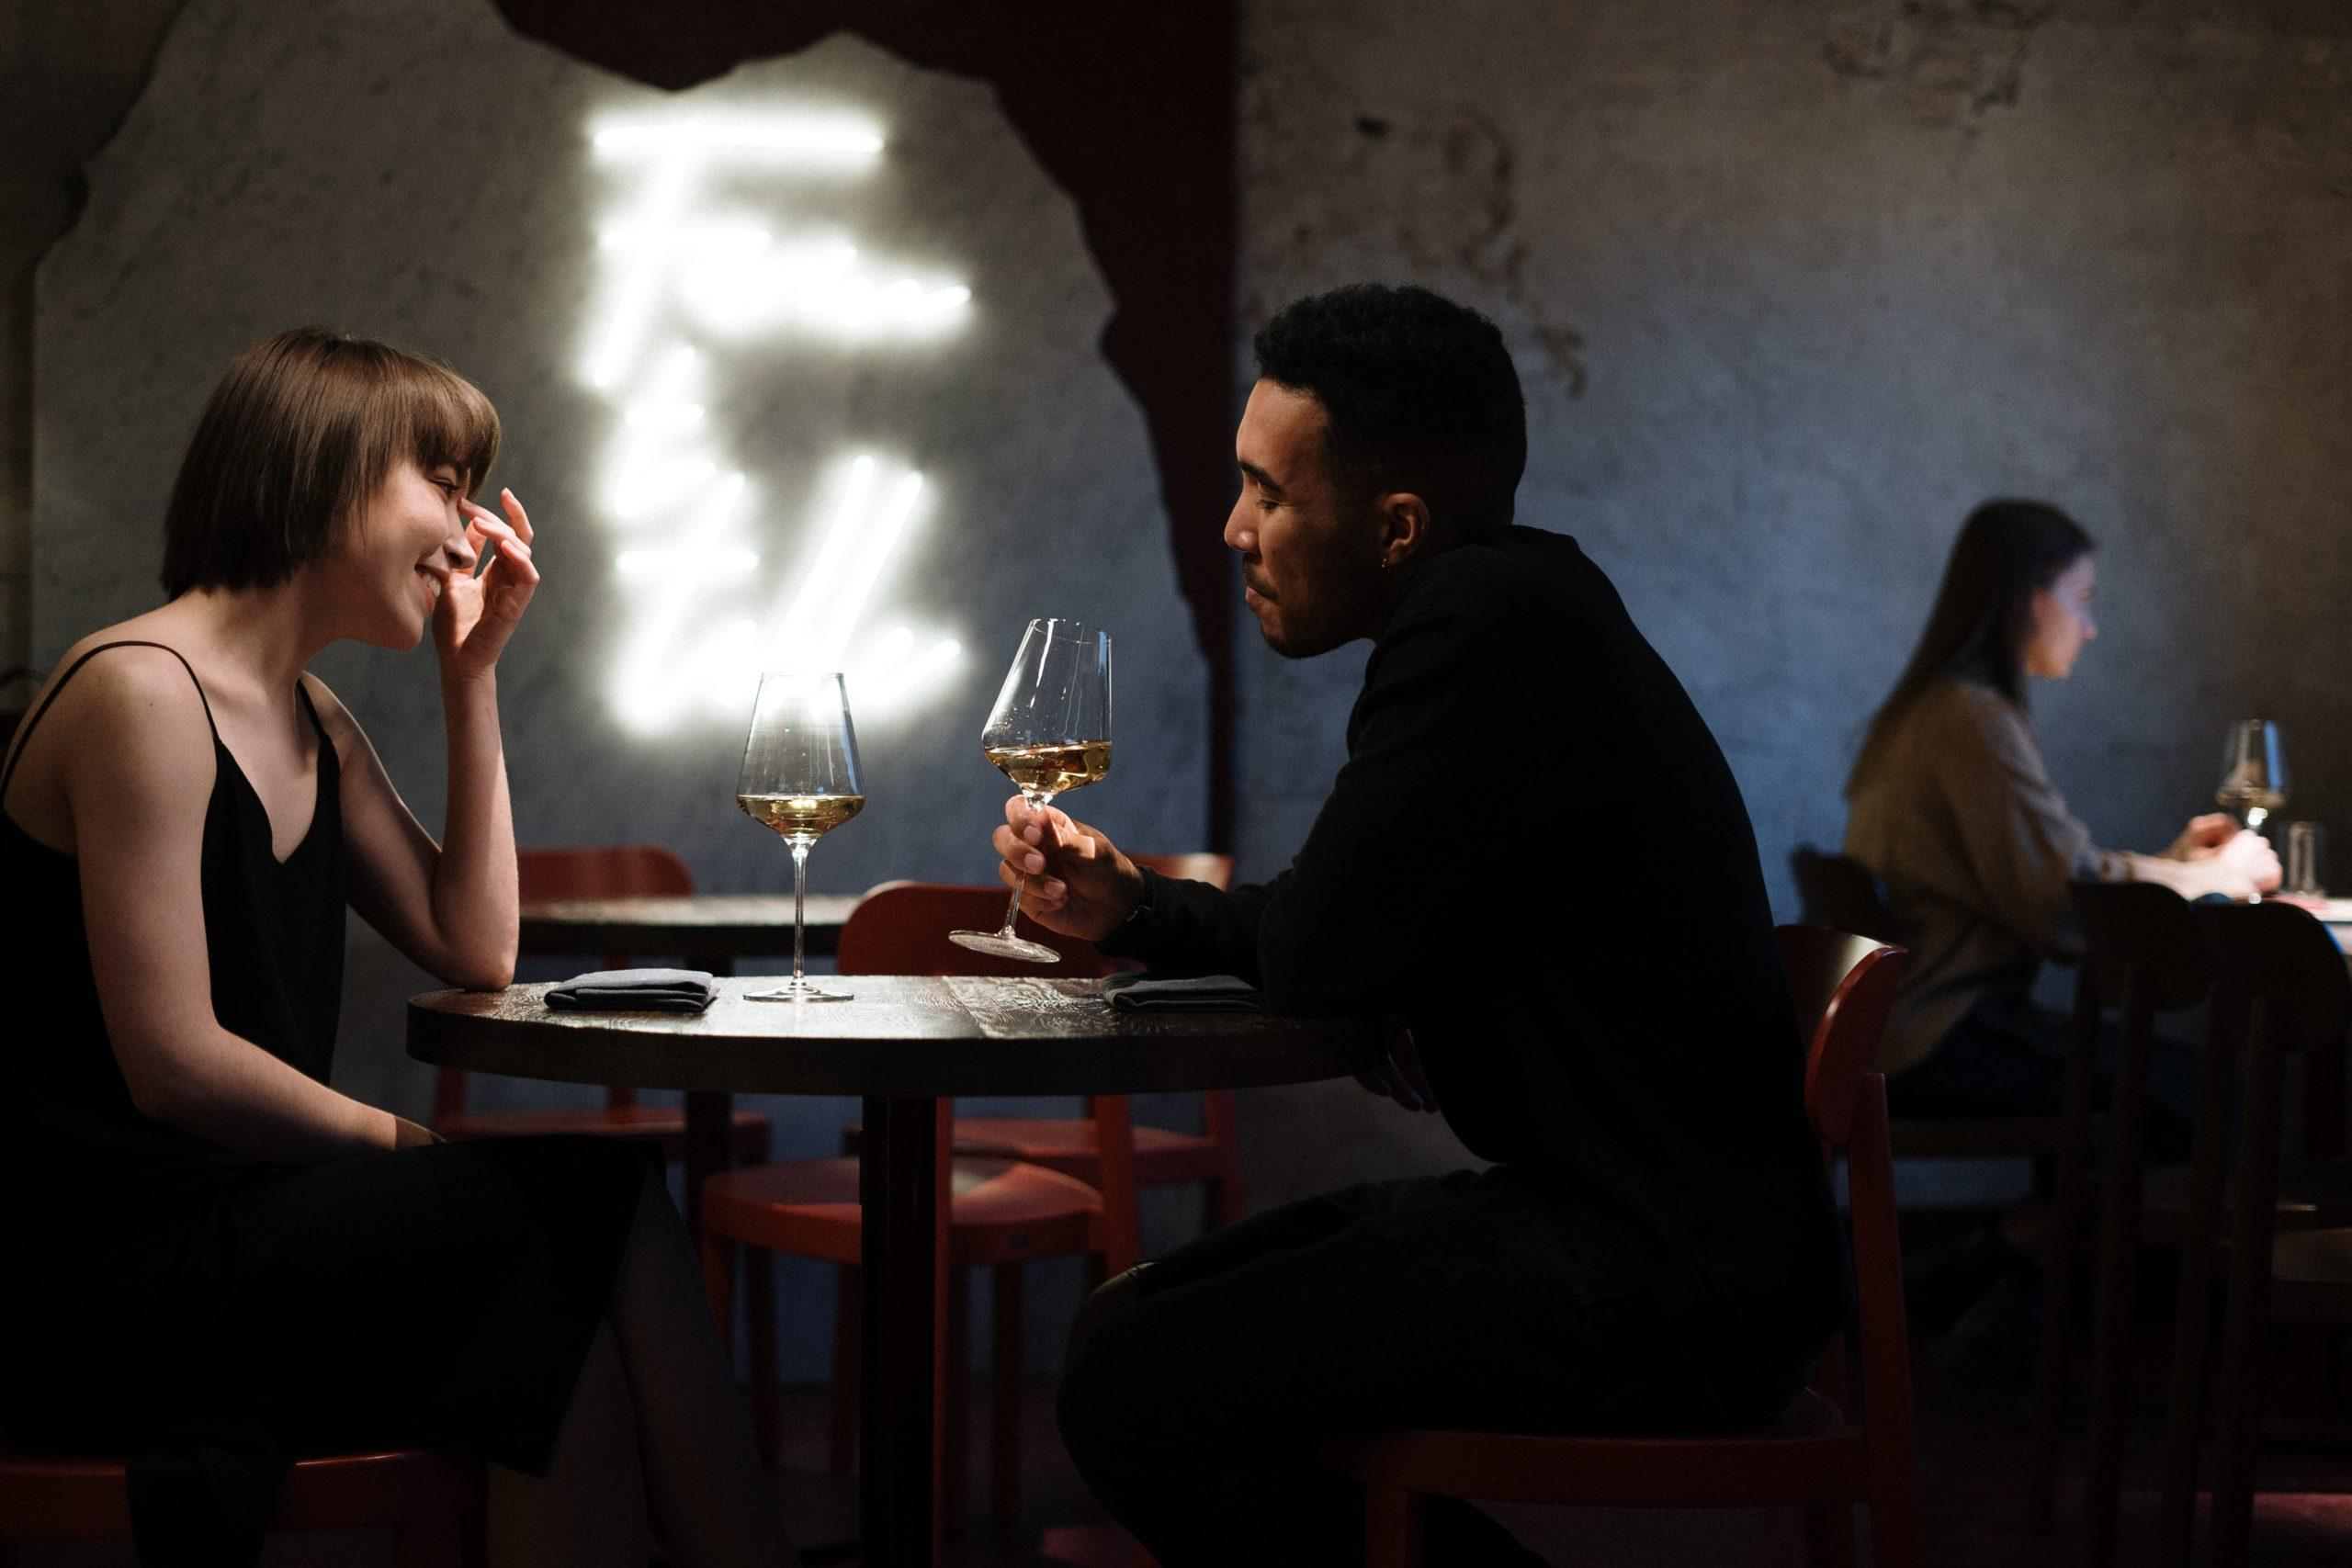 Man in black long sleeved shirt and woman in black dress having wine in a fancy restaurant